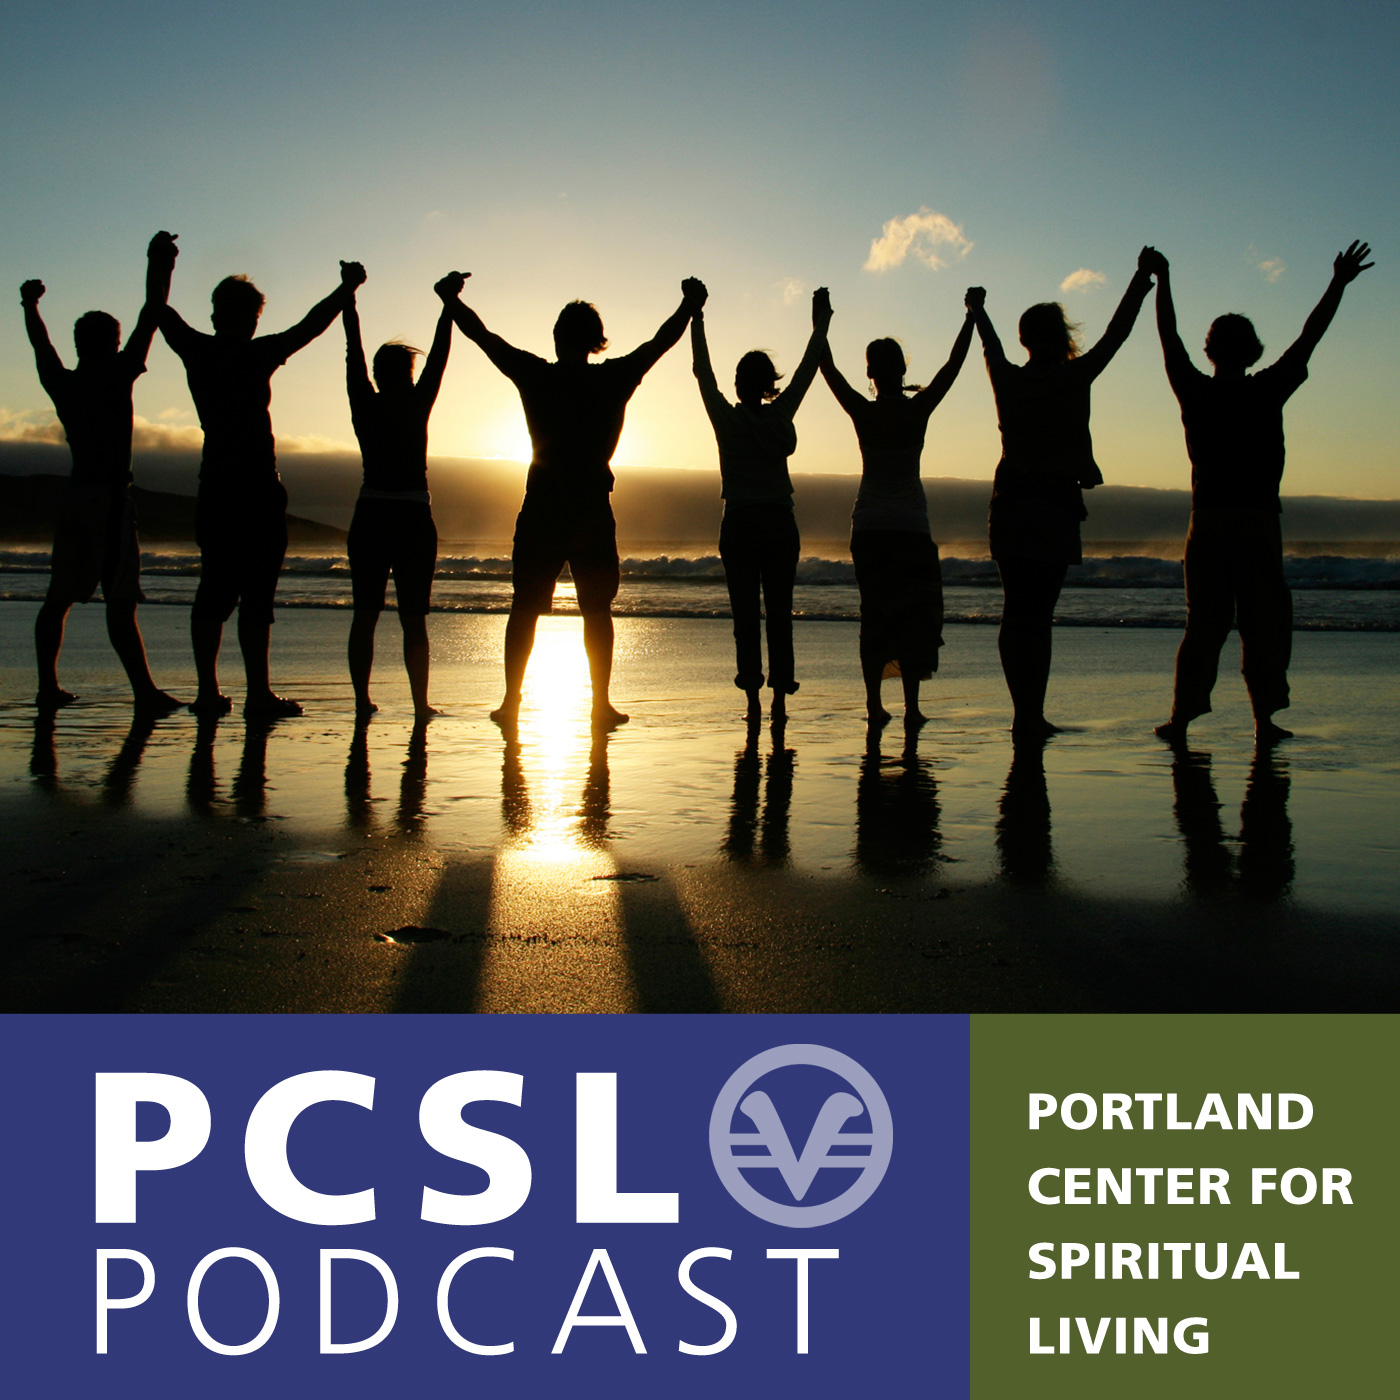 Portland Center for Spiritual Living Podcast